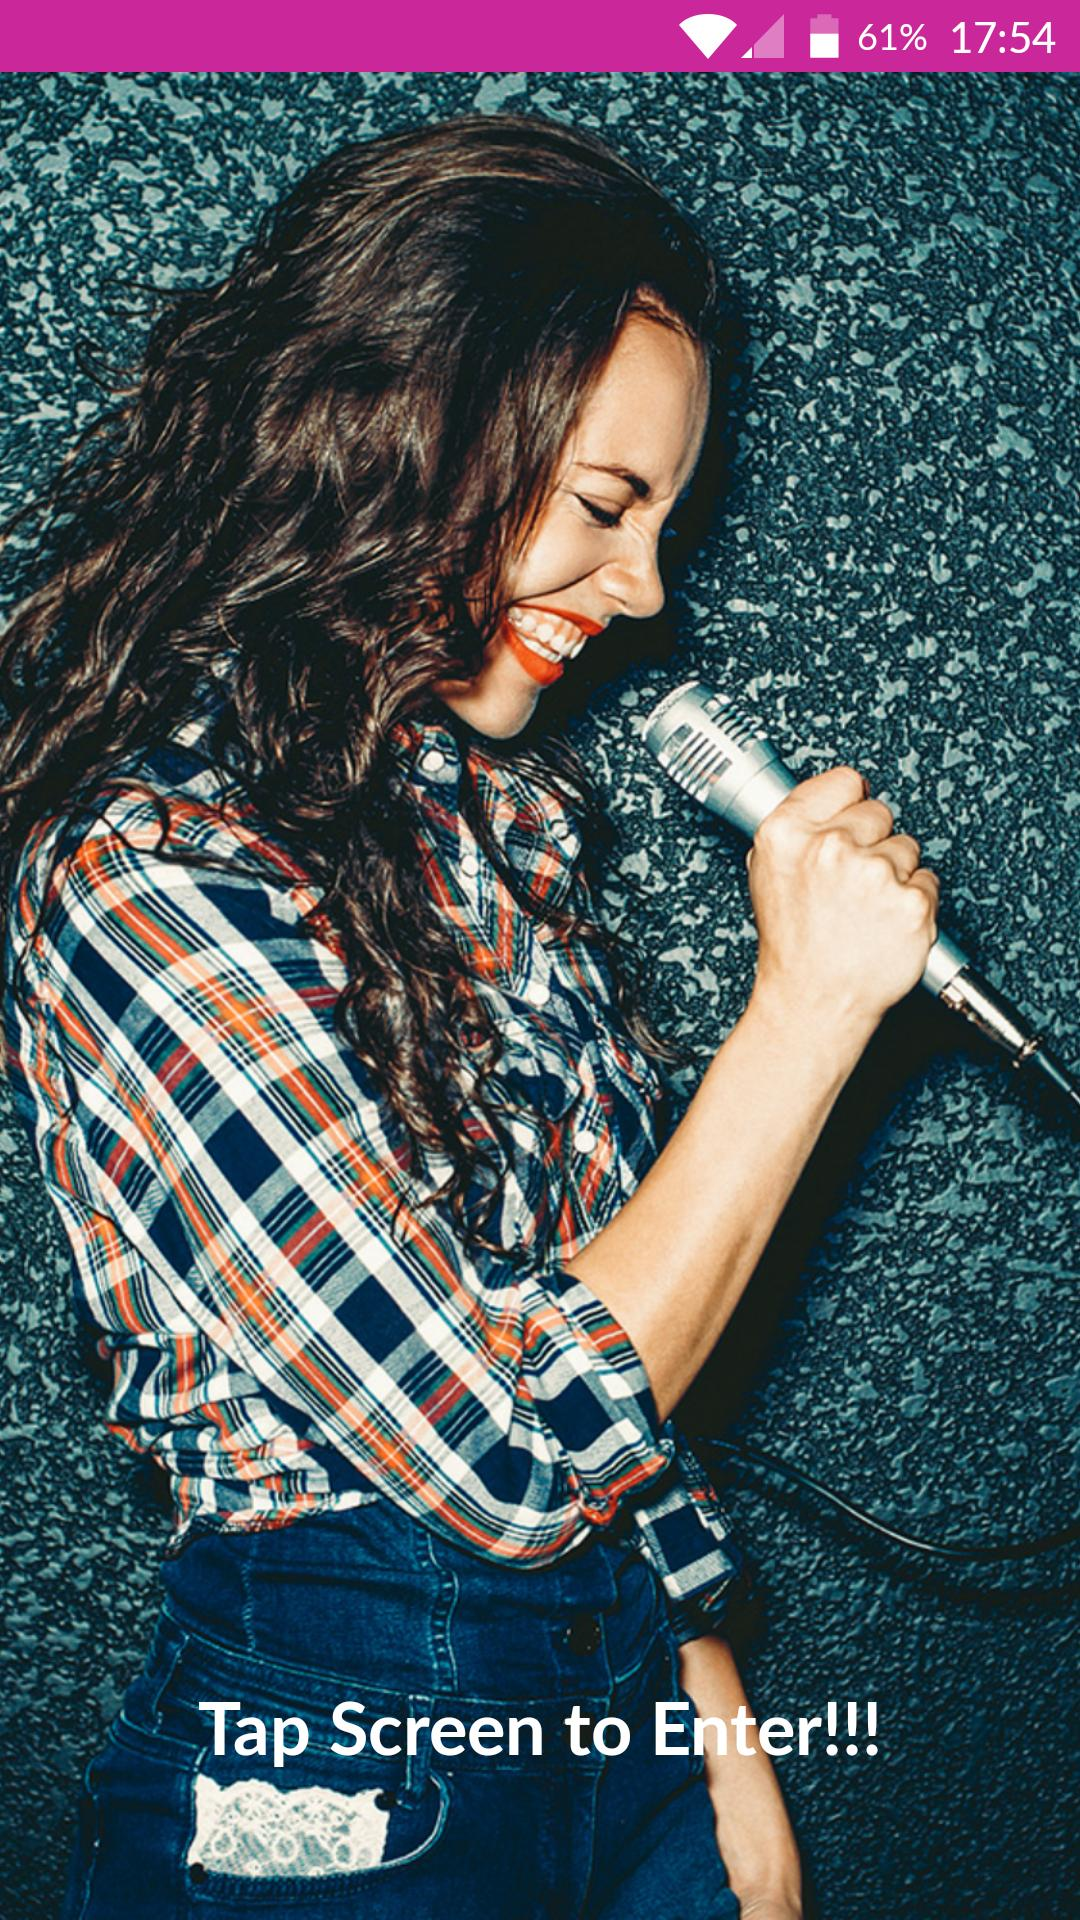 Free Karaoke Online 2018: Sing Music with Lyrics! for